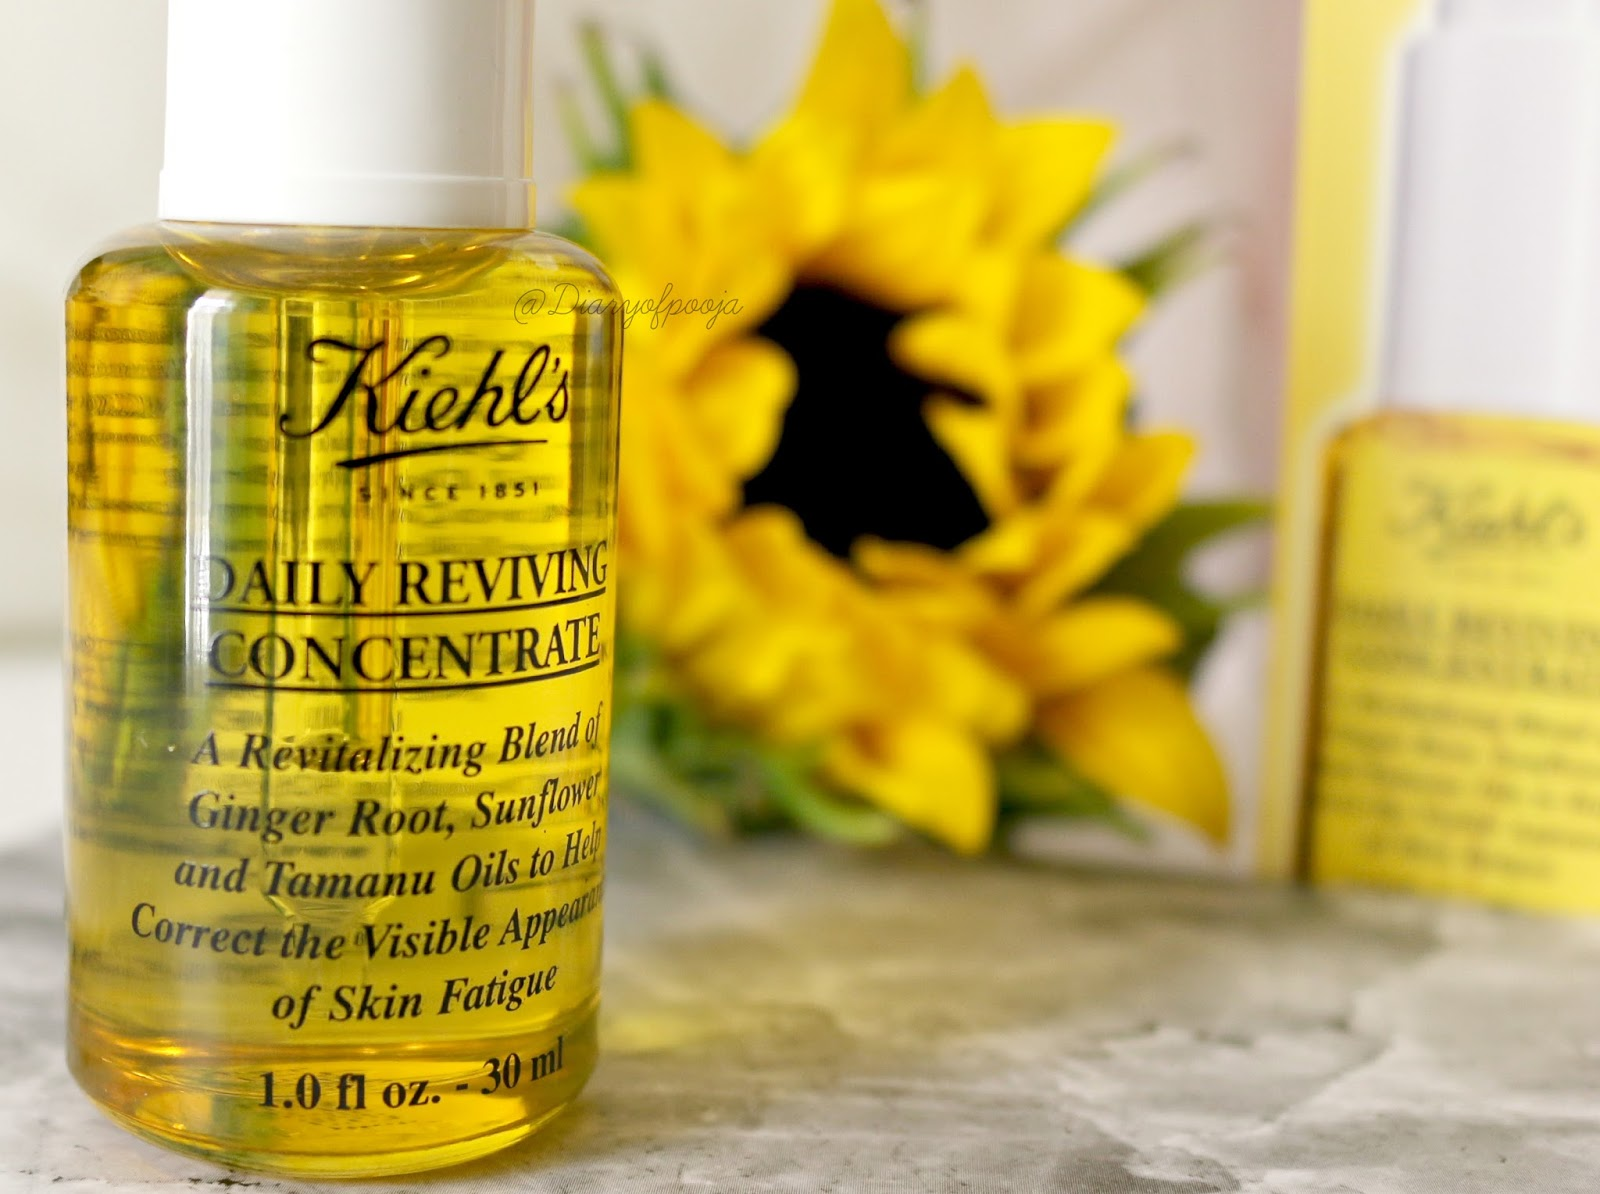 Daily Reviving Concentrate by Kiehls #21